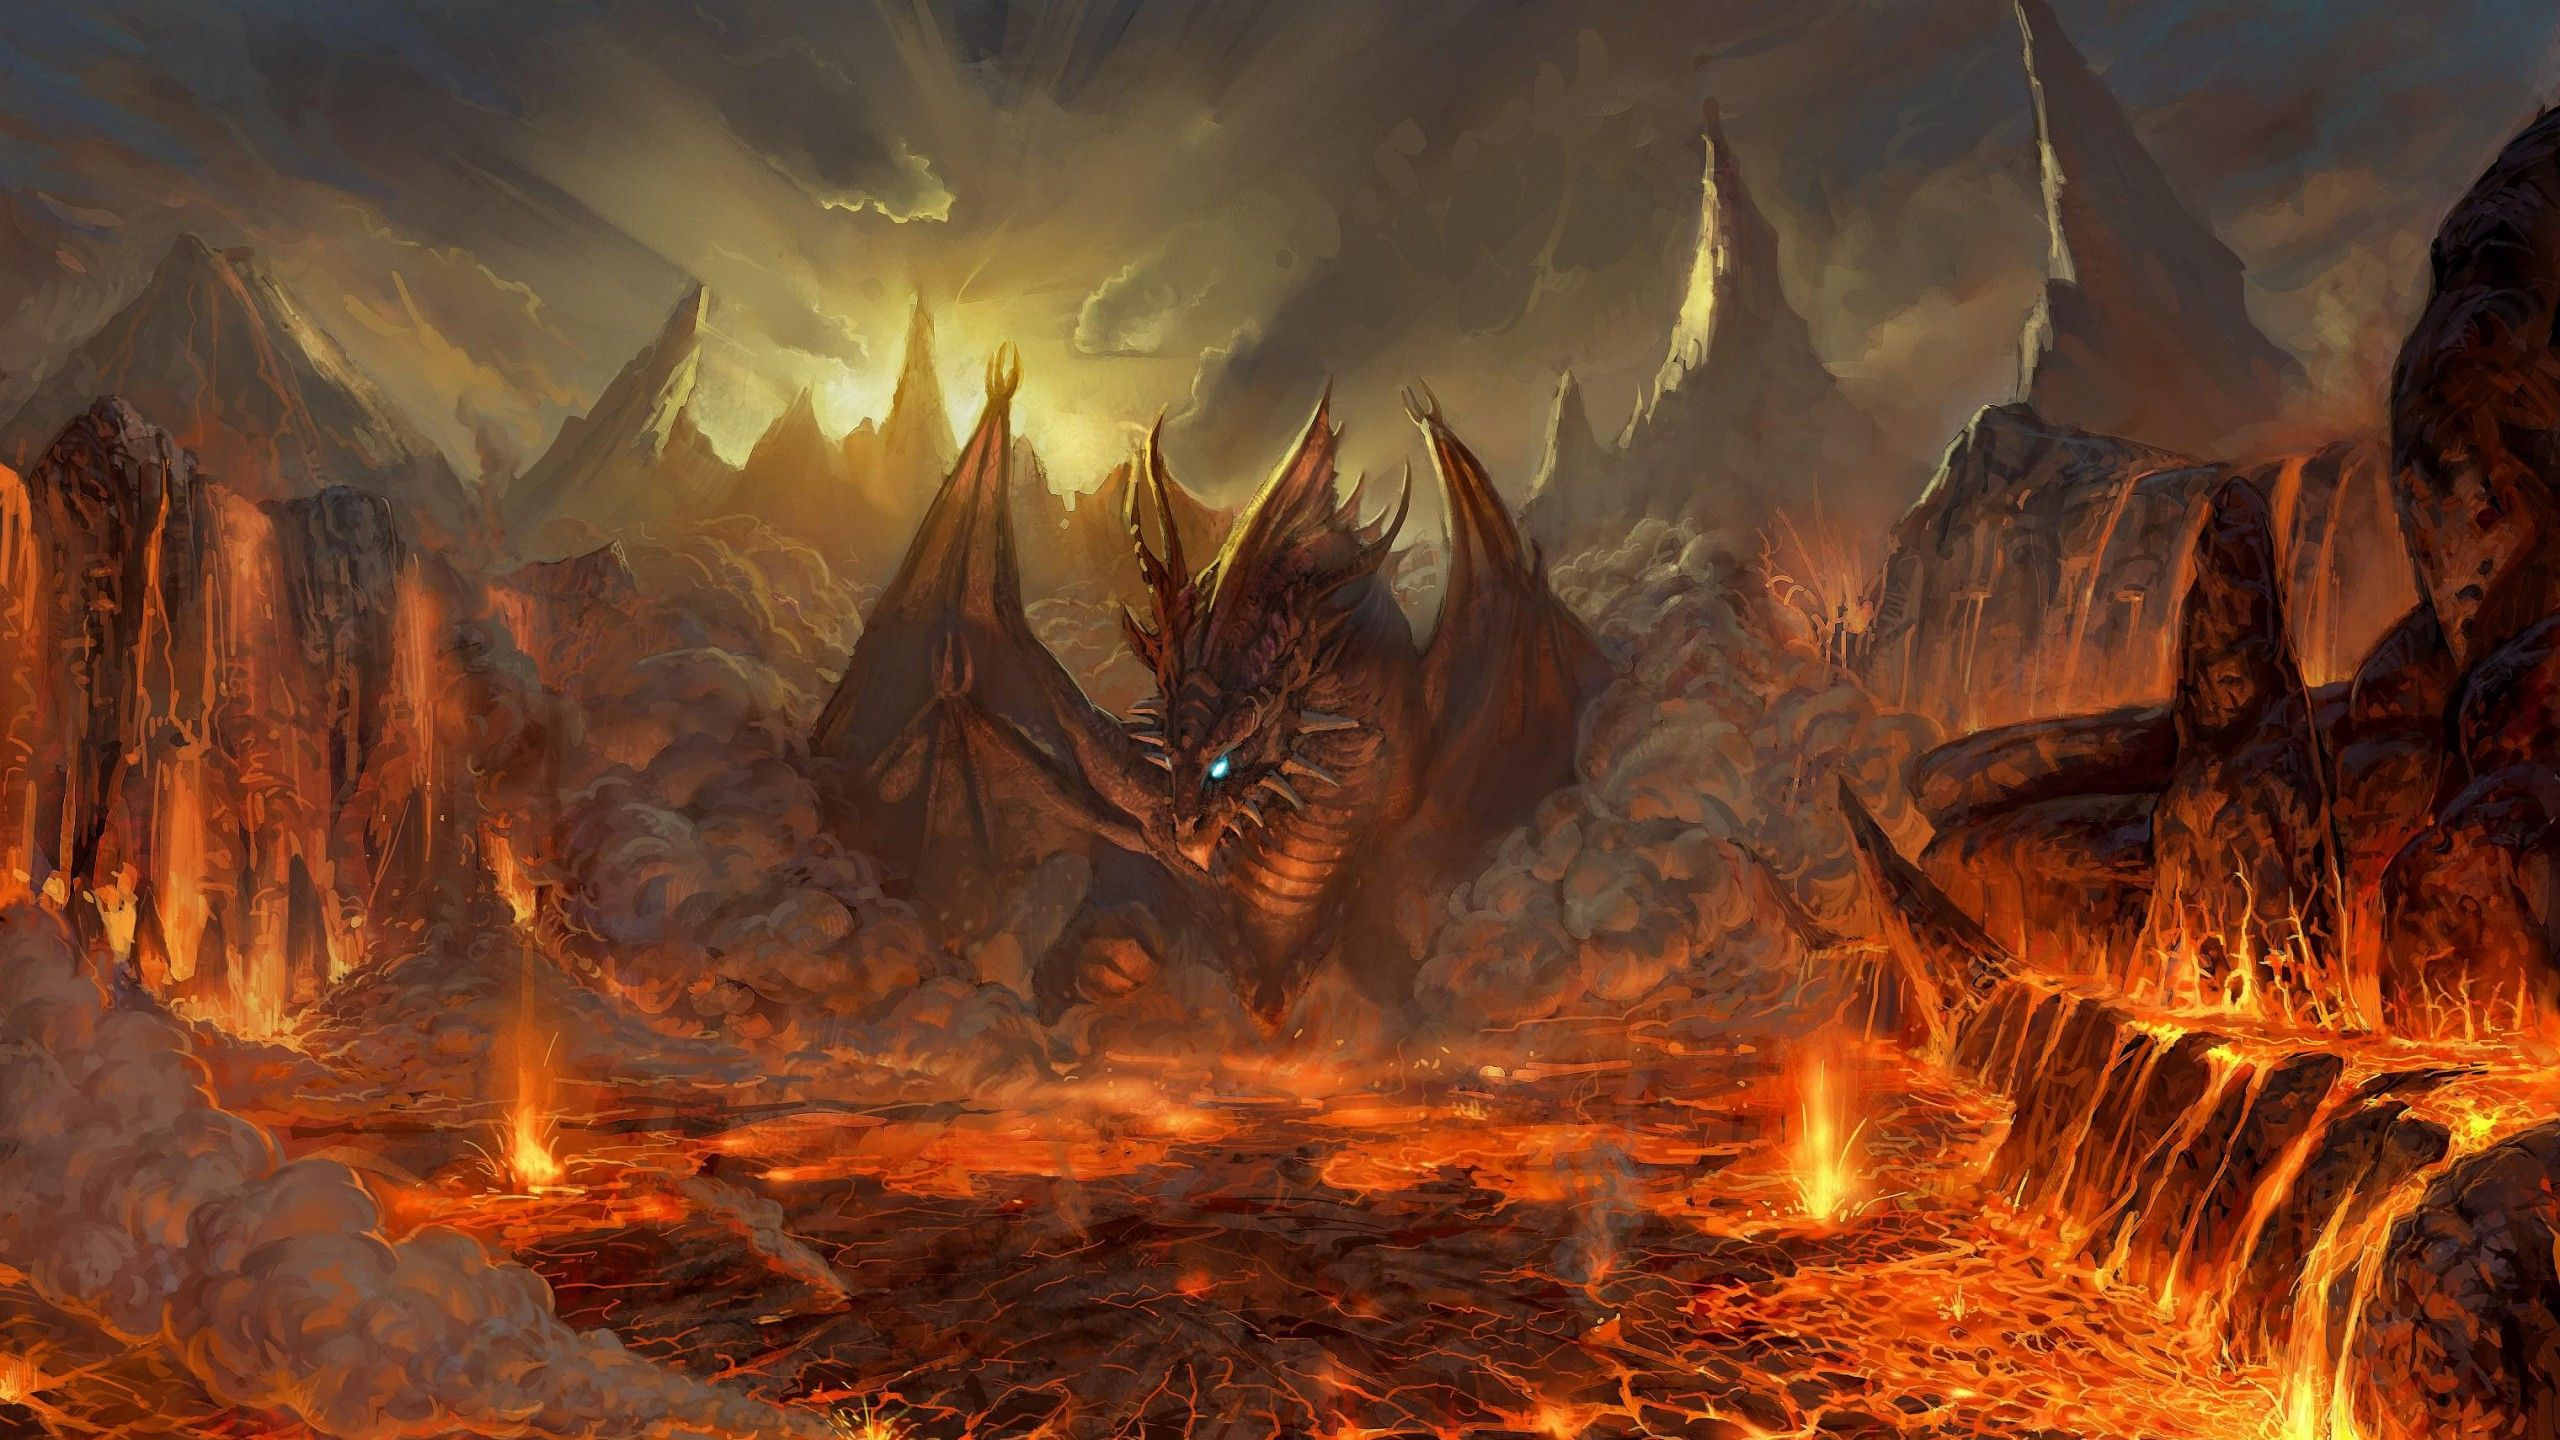 Fire Dragon Wallpapers Desktop Background with High